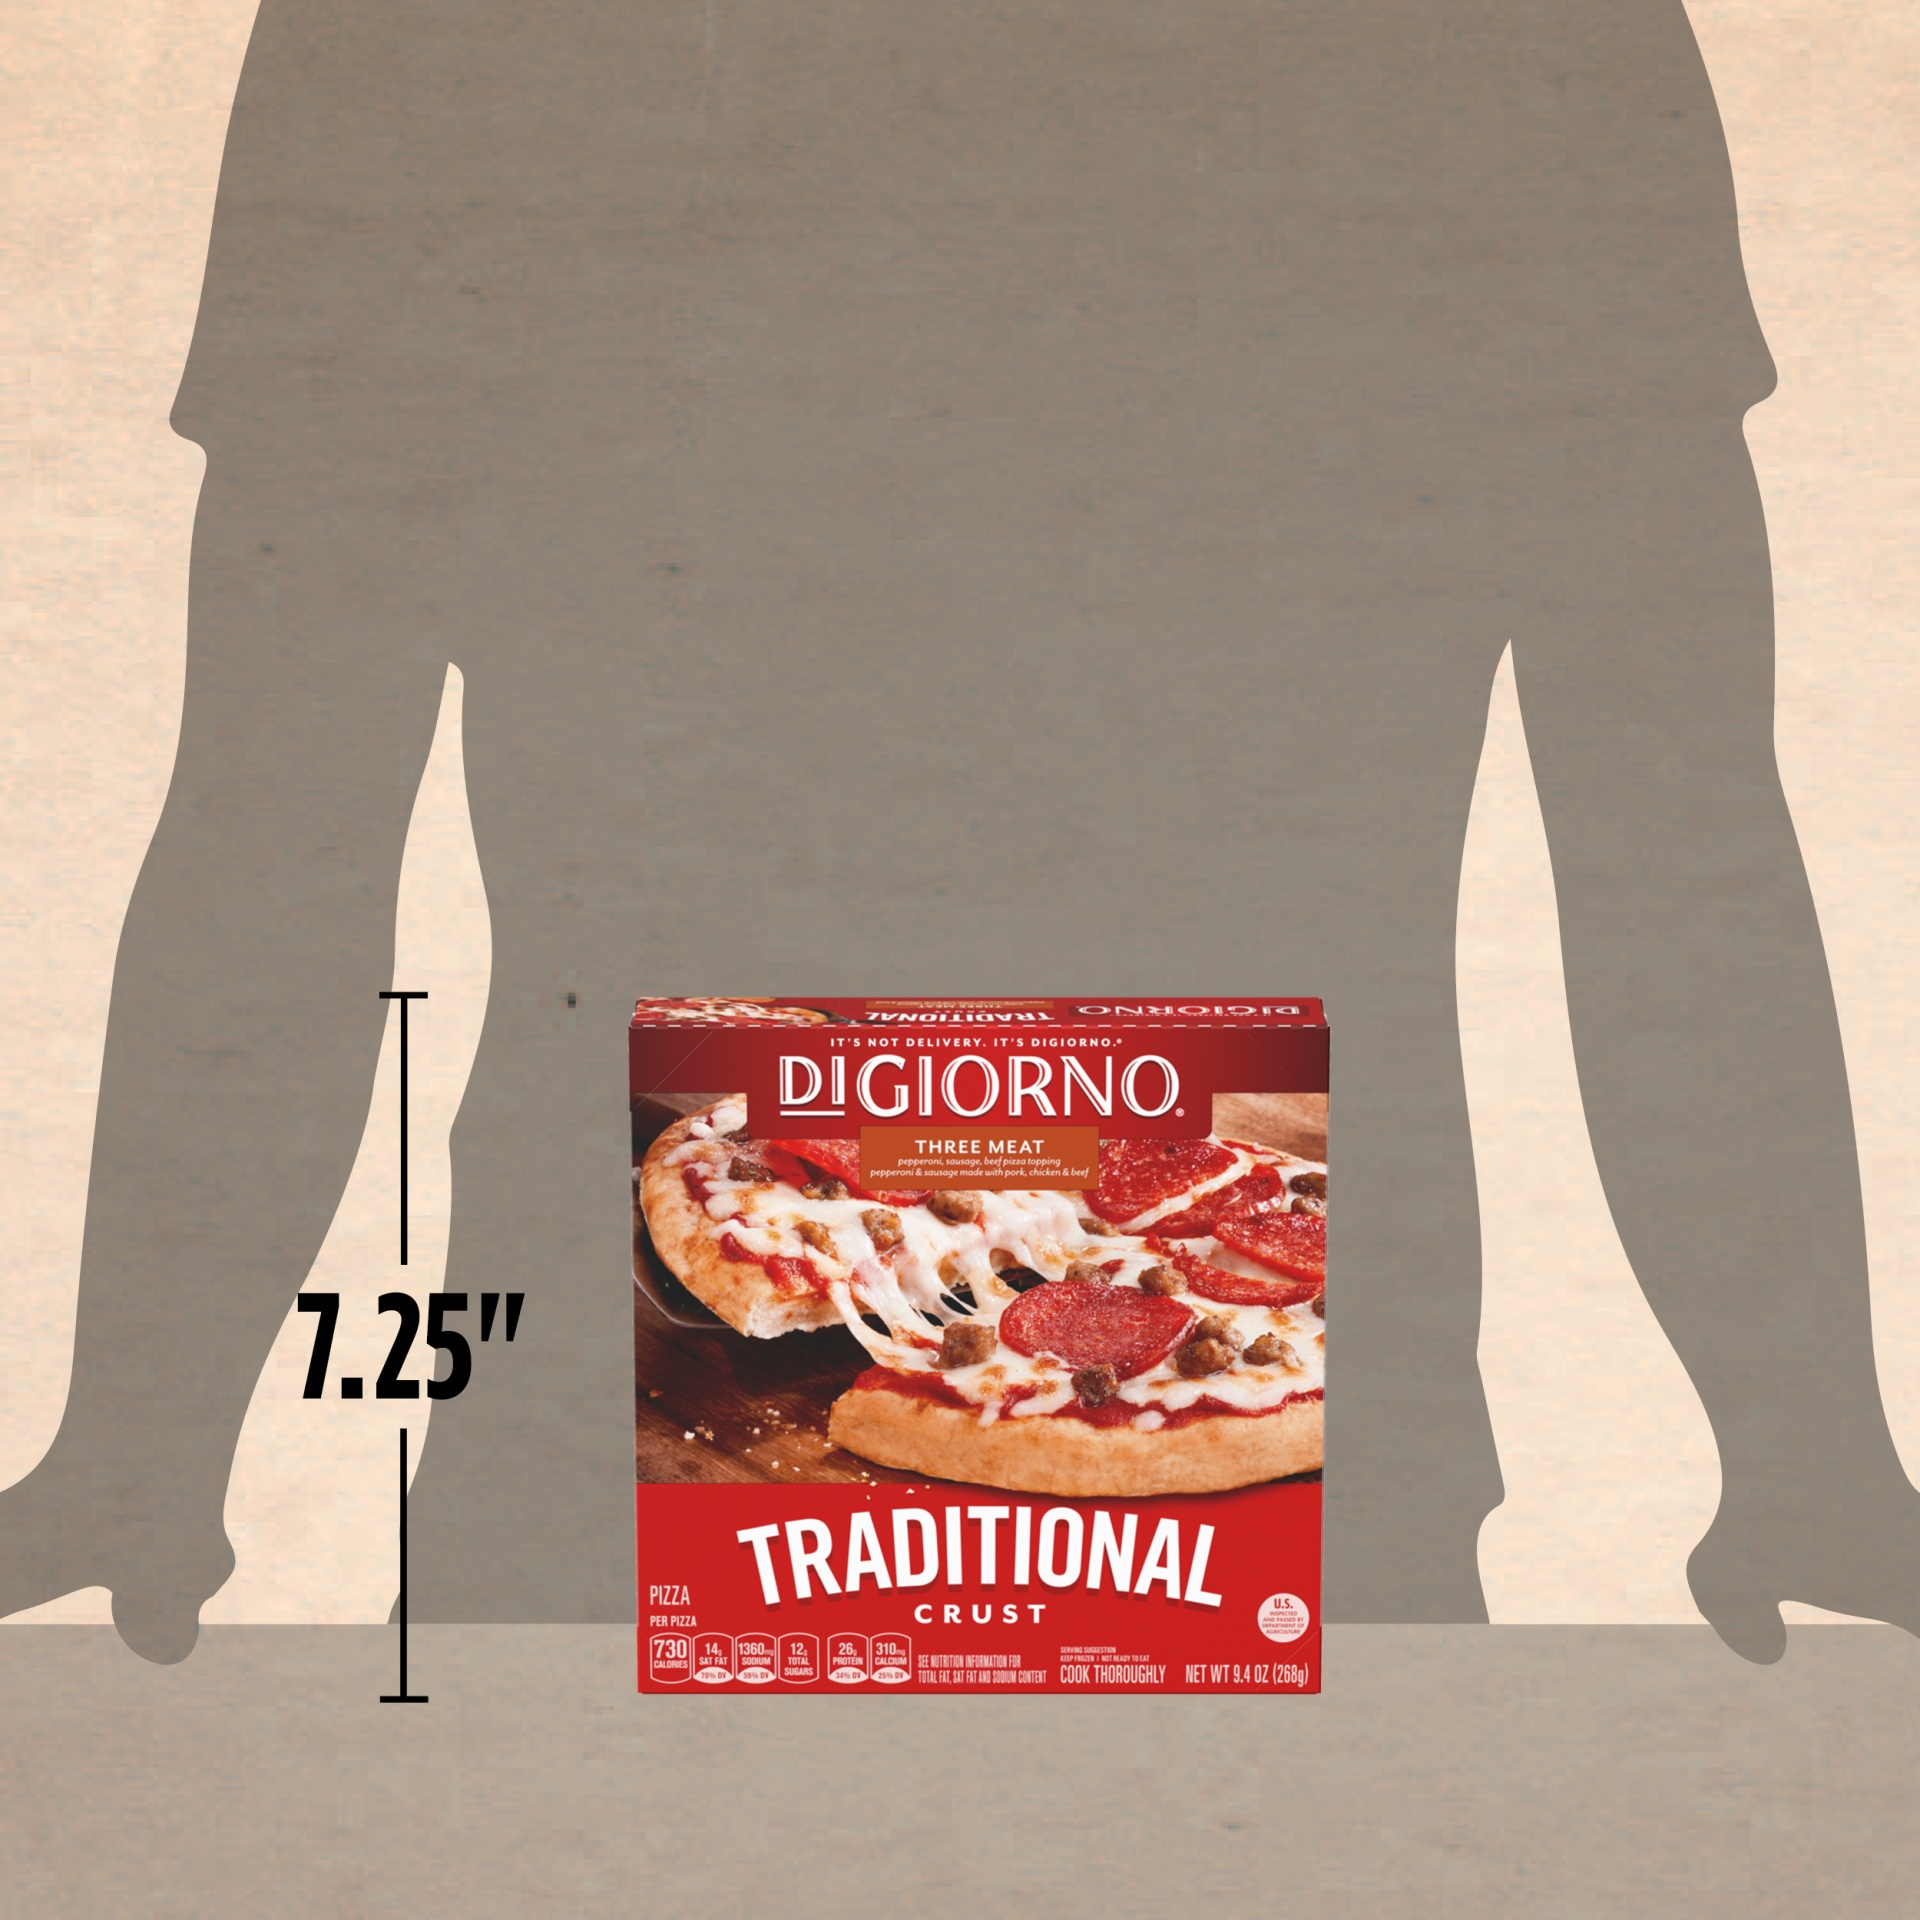 slide 4 of 13, DiGiorno Three Meat Traditional Crust Pizza,